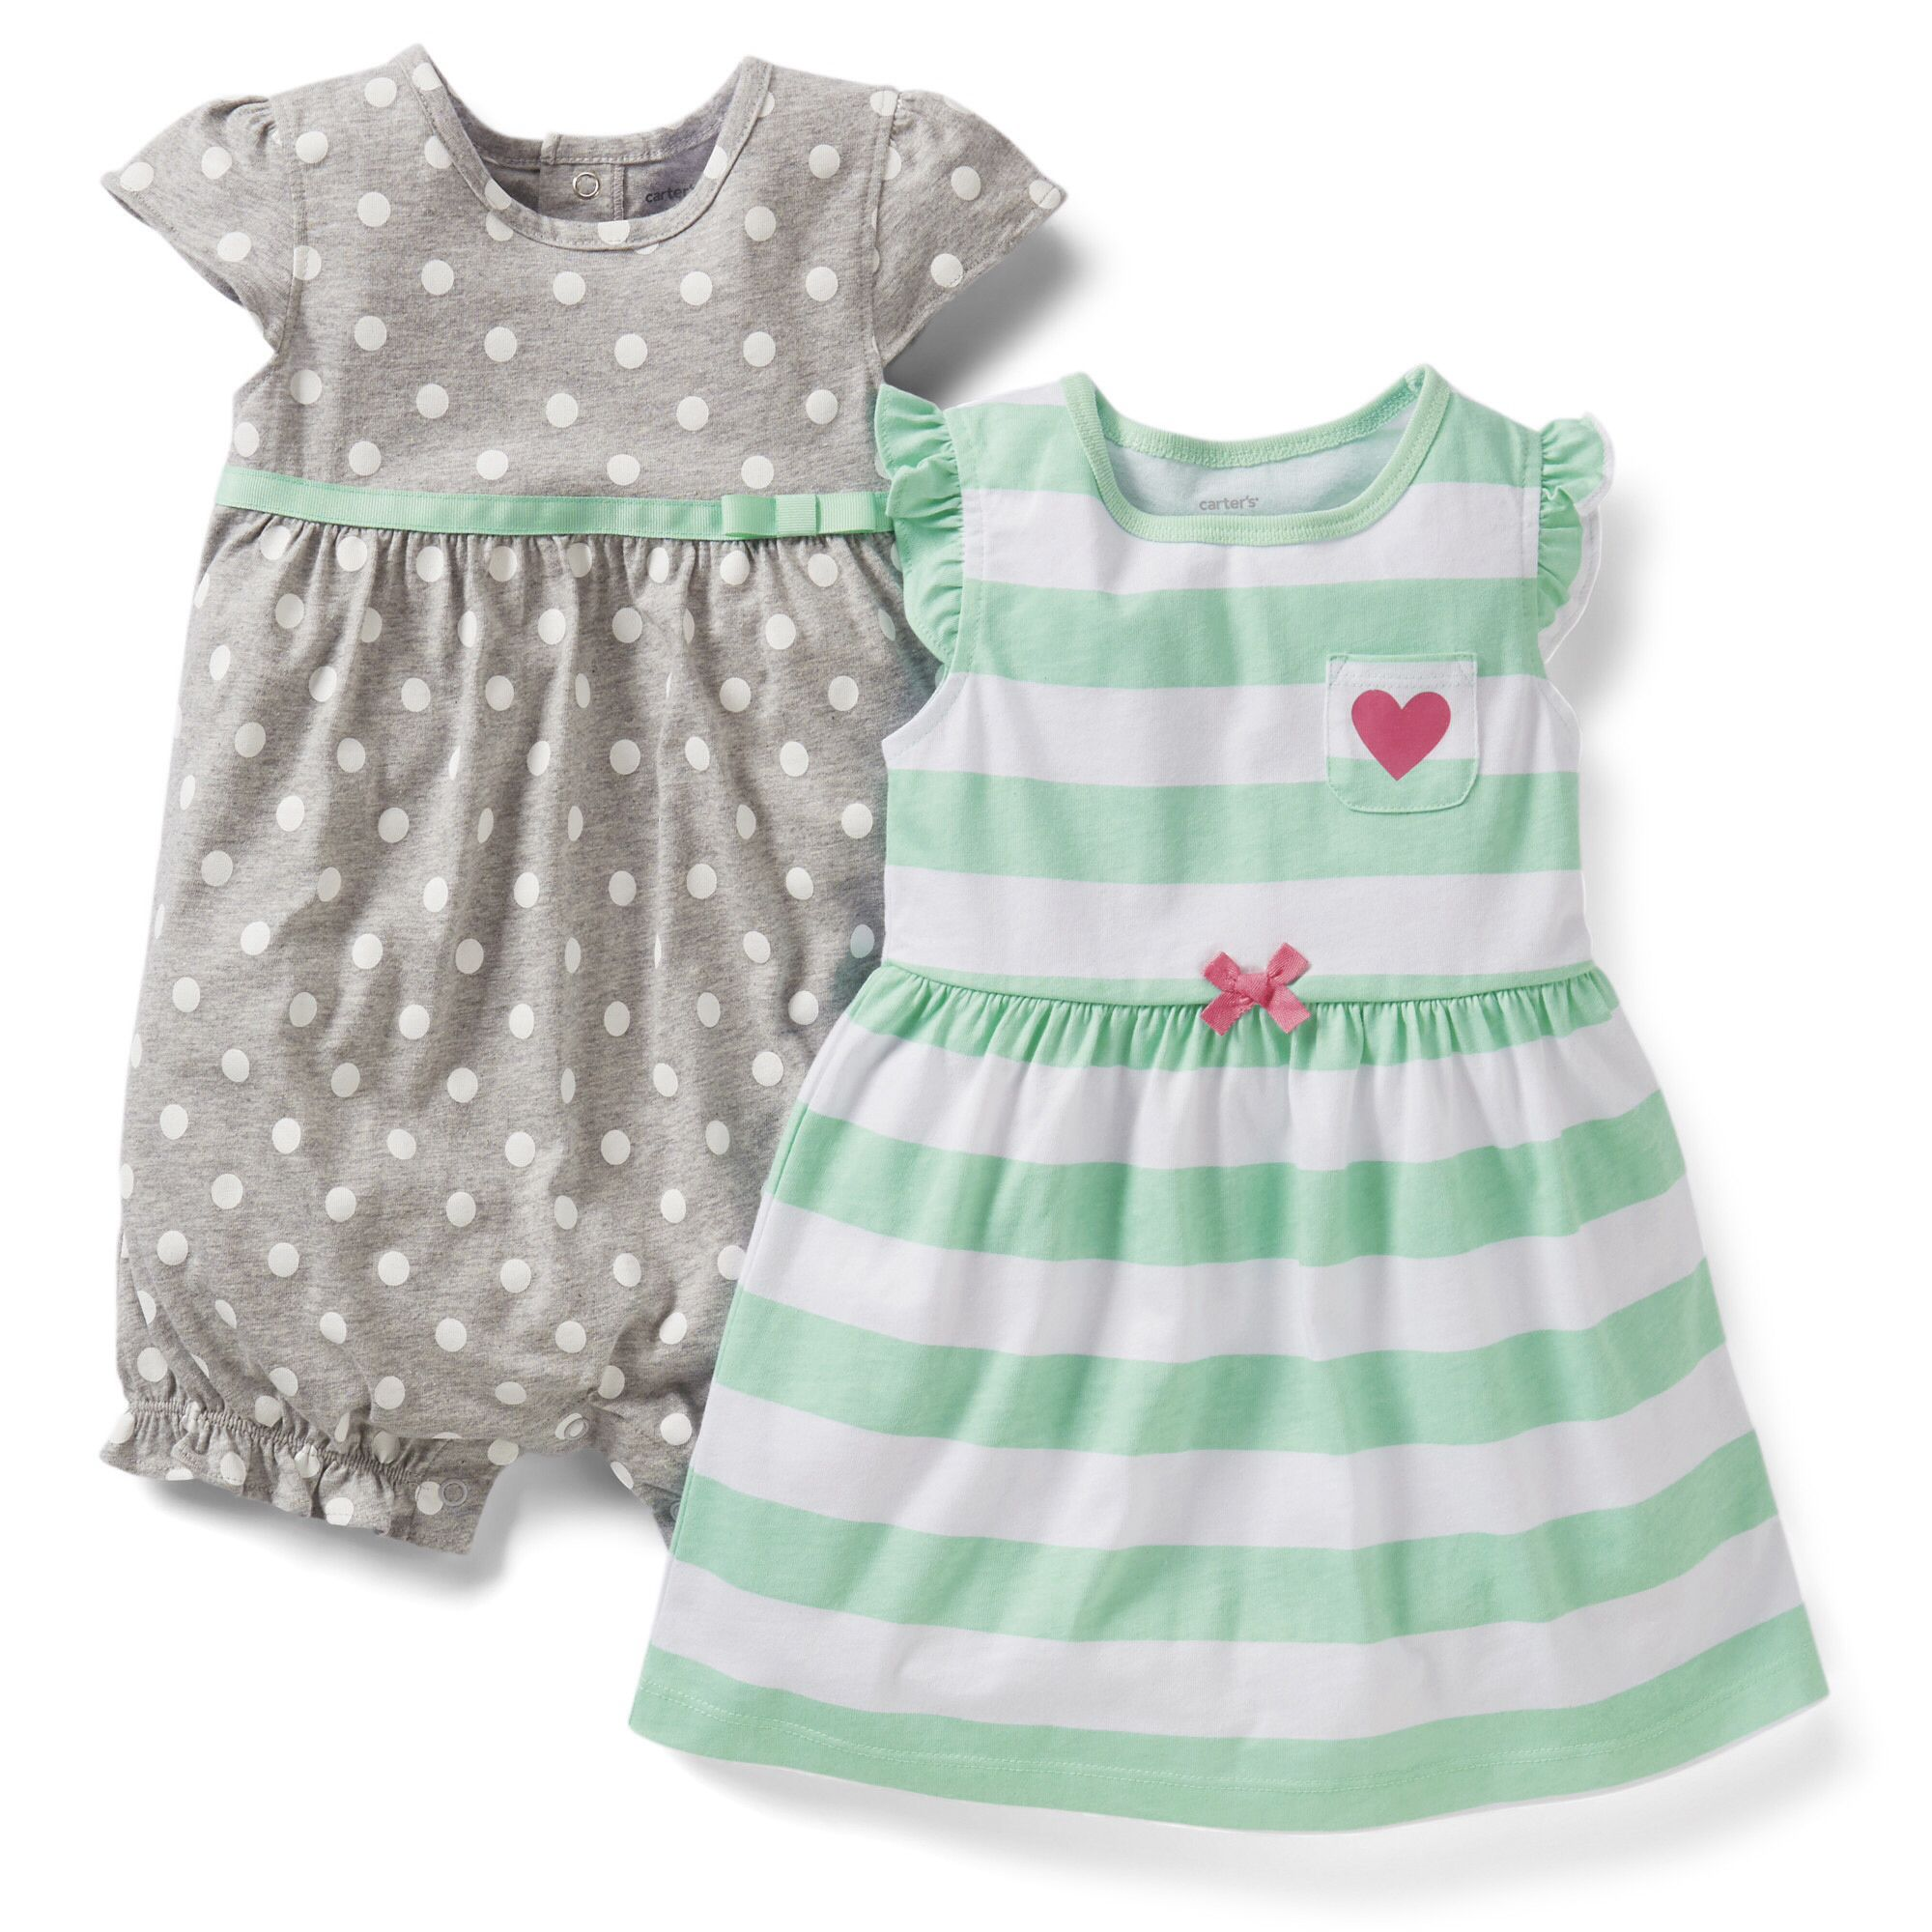 cd84c5072 In double | Cute kids things! | Carters baby girl, Baby kids clothes ...